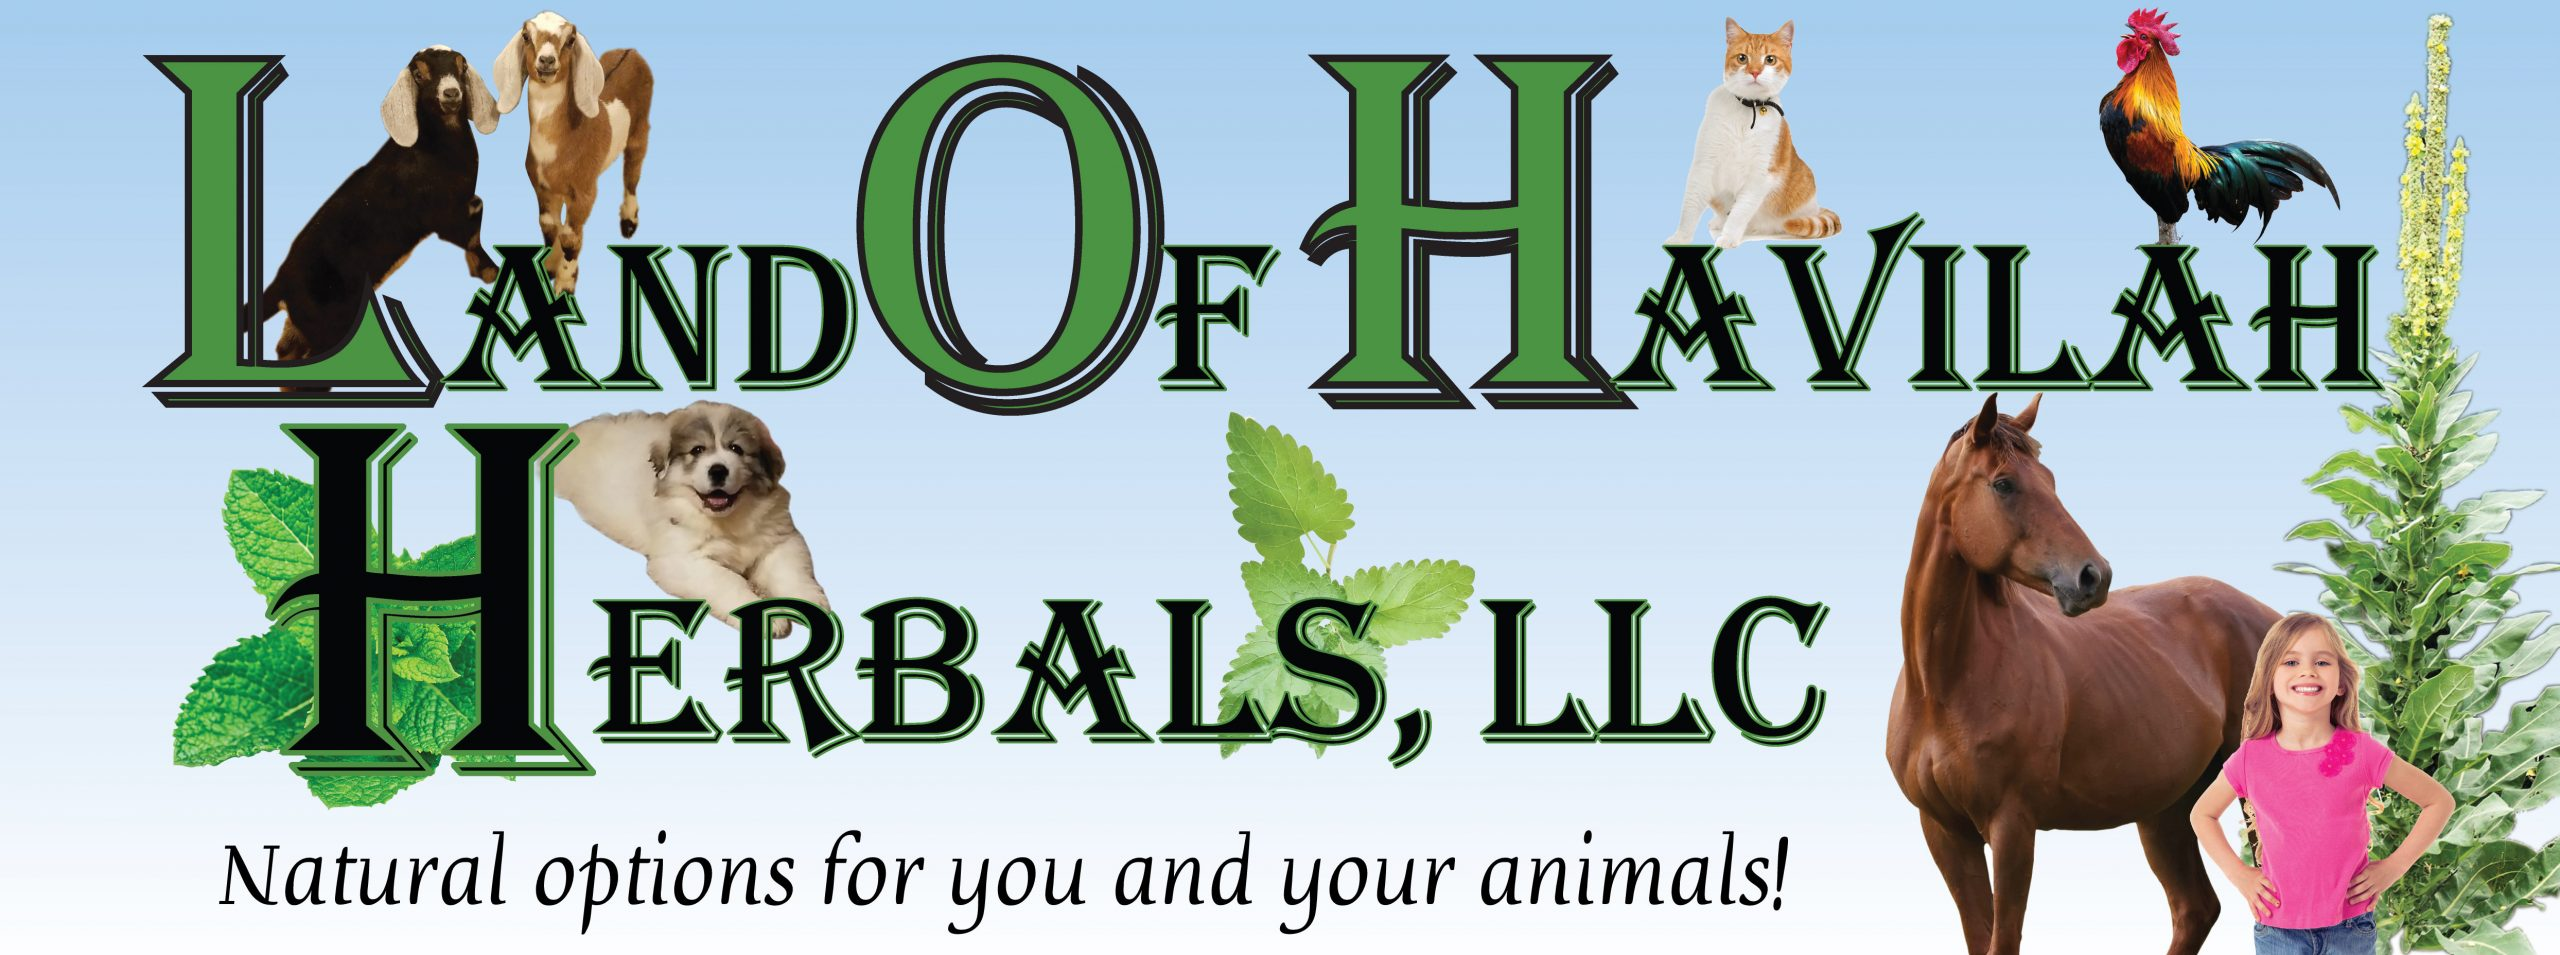 Land of Havilah Herbals & Farm